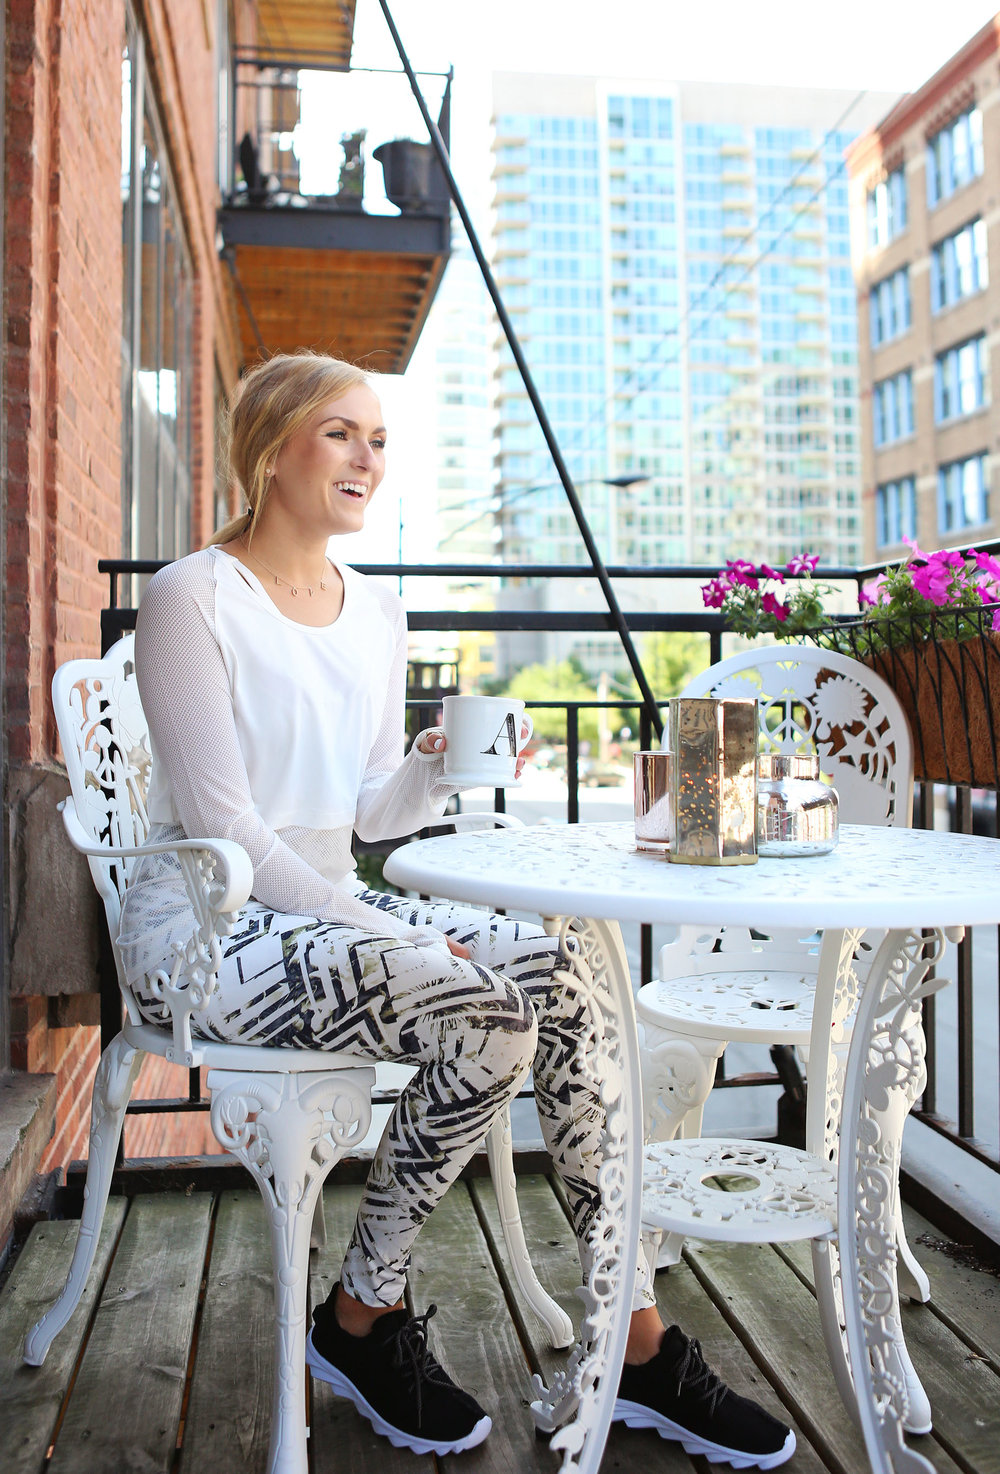 girl smile workout clothes balcony